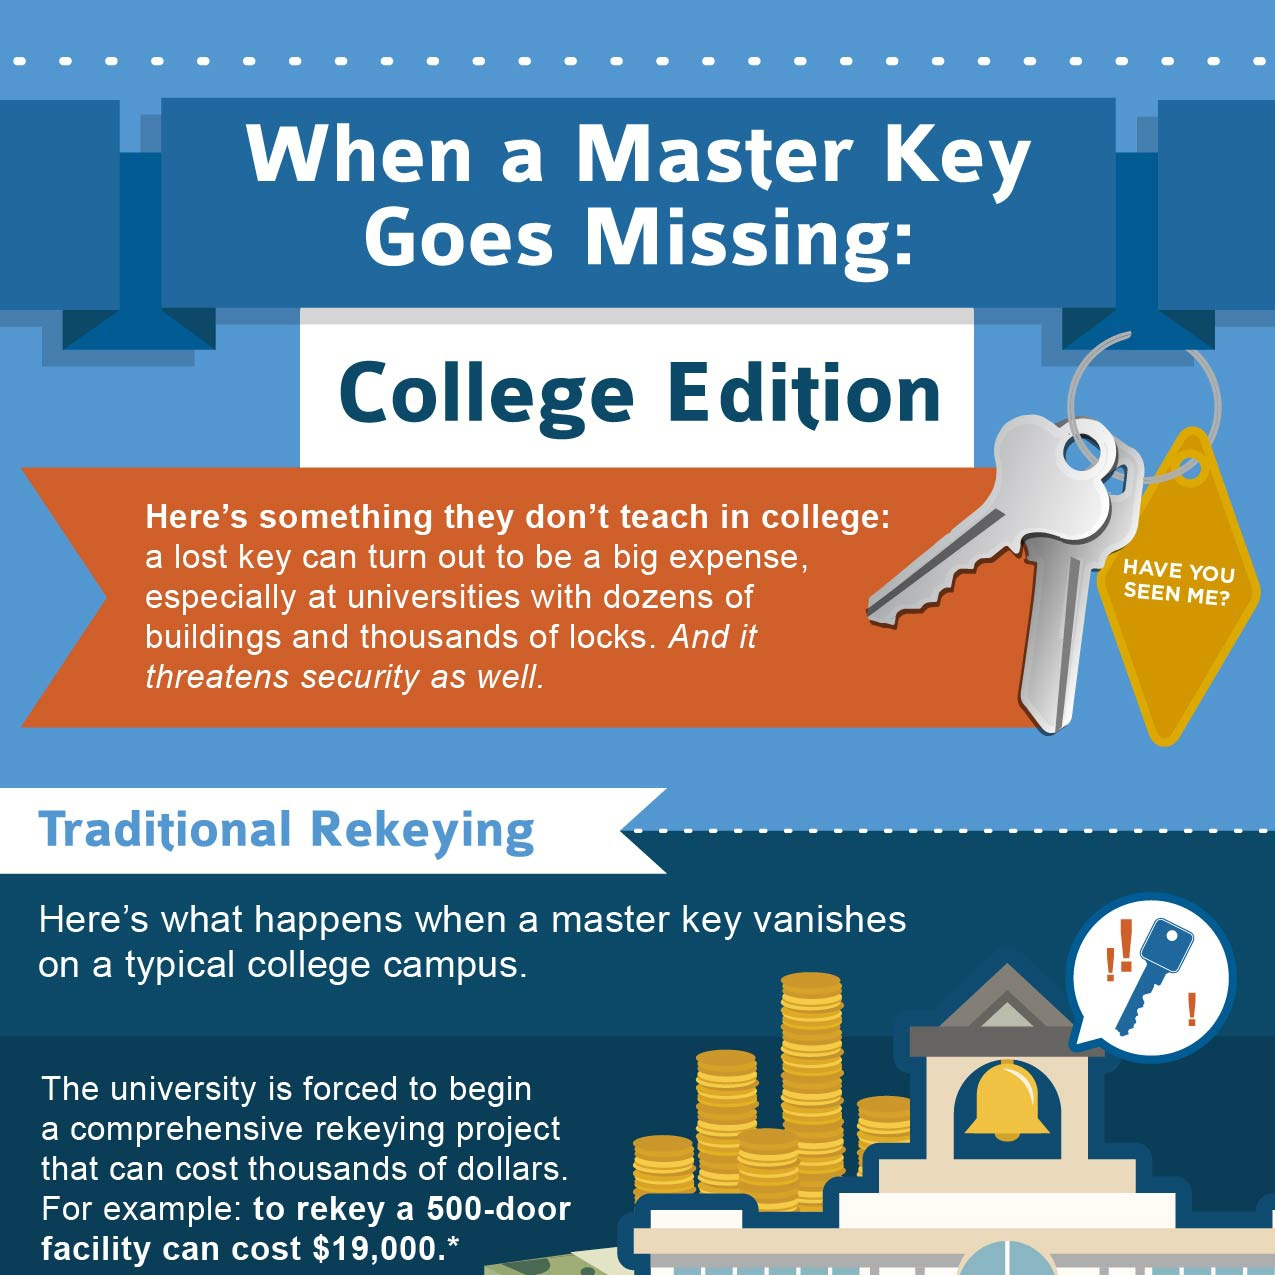 When a Master Key Goes Missing: College Edition